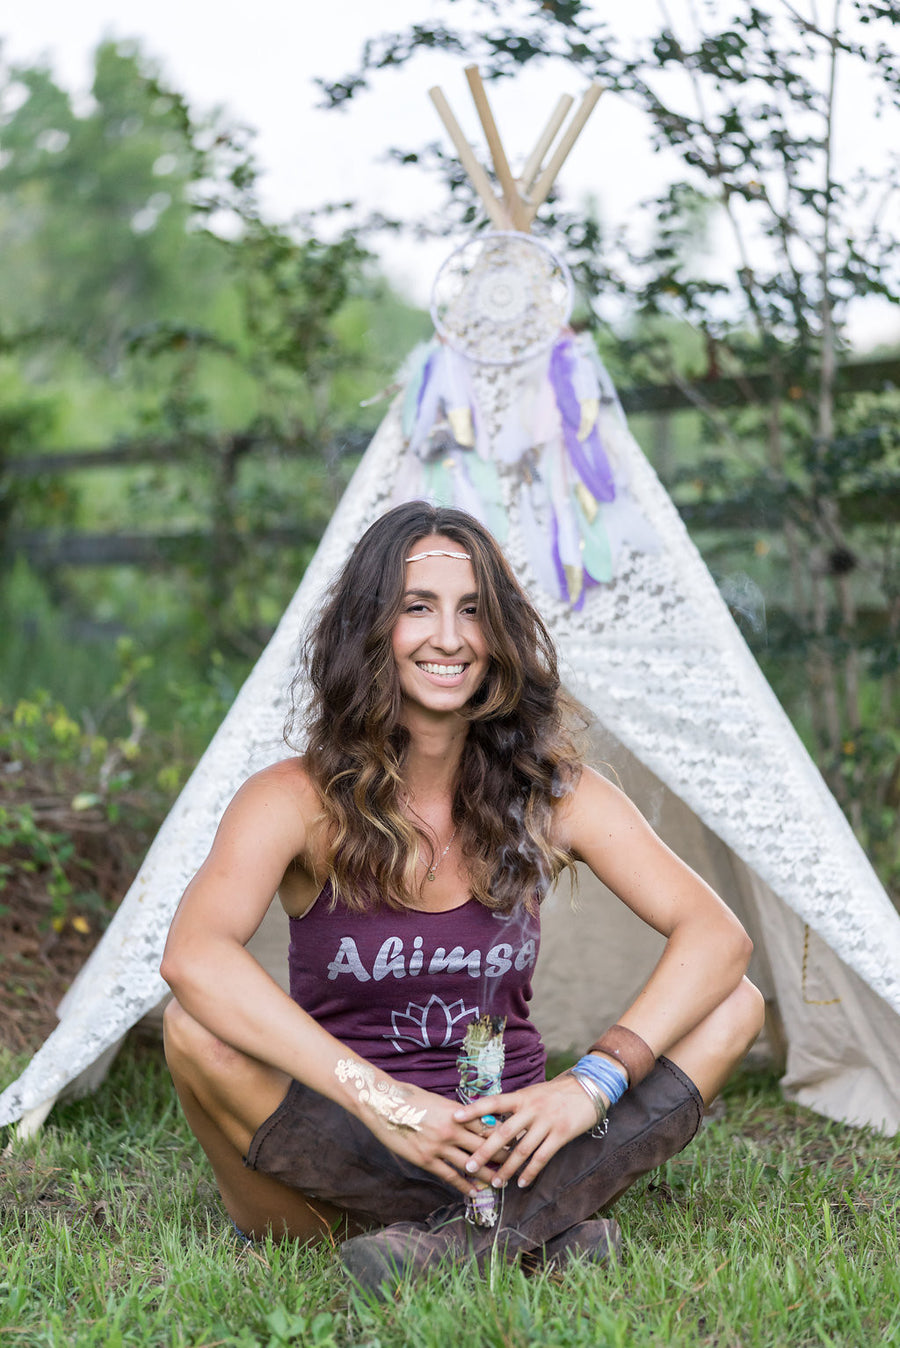 Ahimsa and Lotus Flower Spiritual Women's Tank Top - Inspired by Stephanie Rose